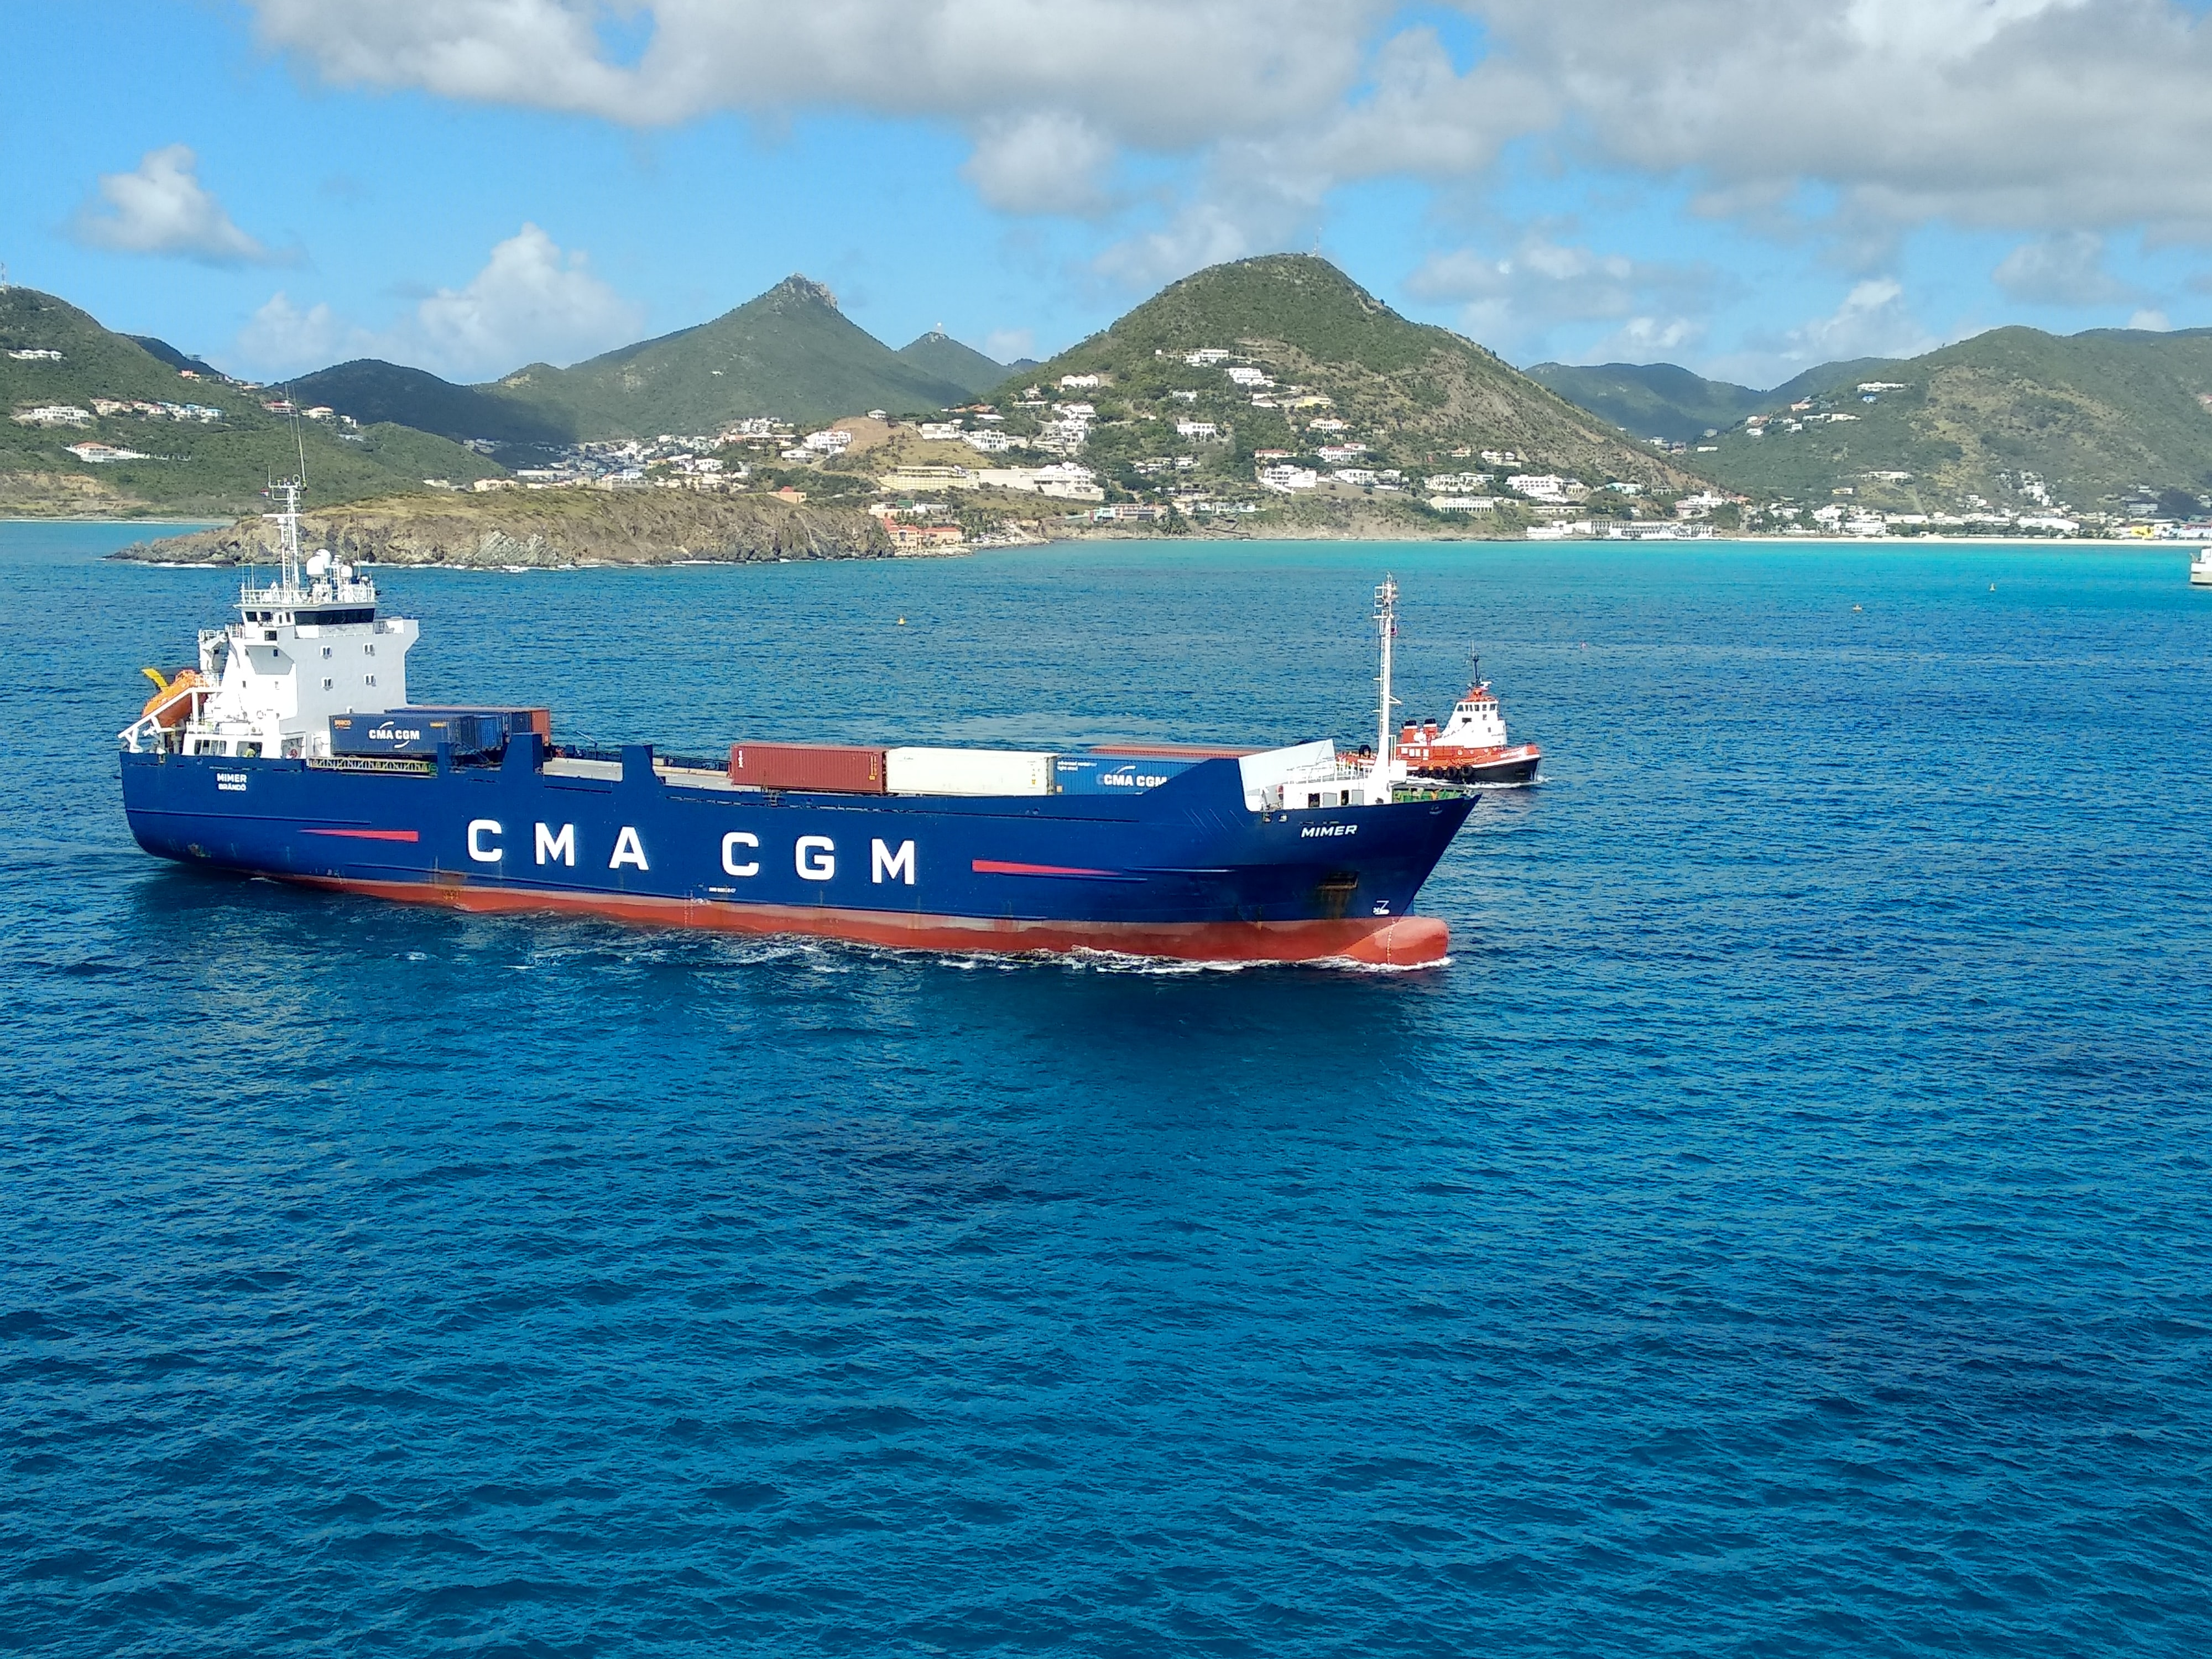 This week's top news in logistics: Good service is hard to find, but for ocean shippers you can get better service for a cost. The CEO of CMA CGM talks about service quality and price at #TPM21, while elsewhere ocean reliability woes continue. Meanwhile, vulnerable supply chains are coming under the microscope of big government.